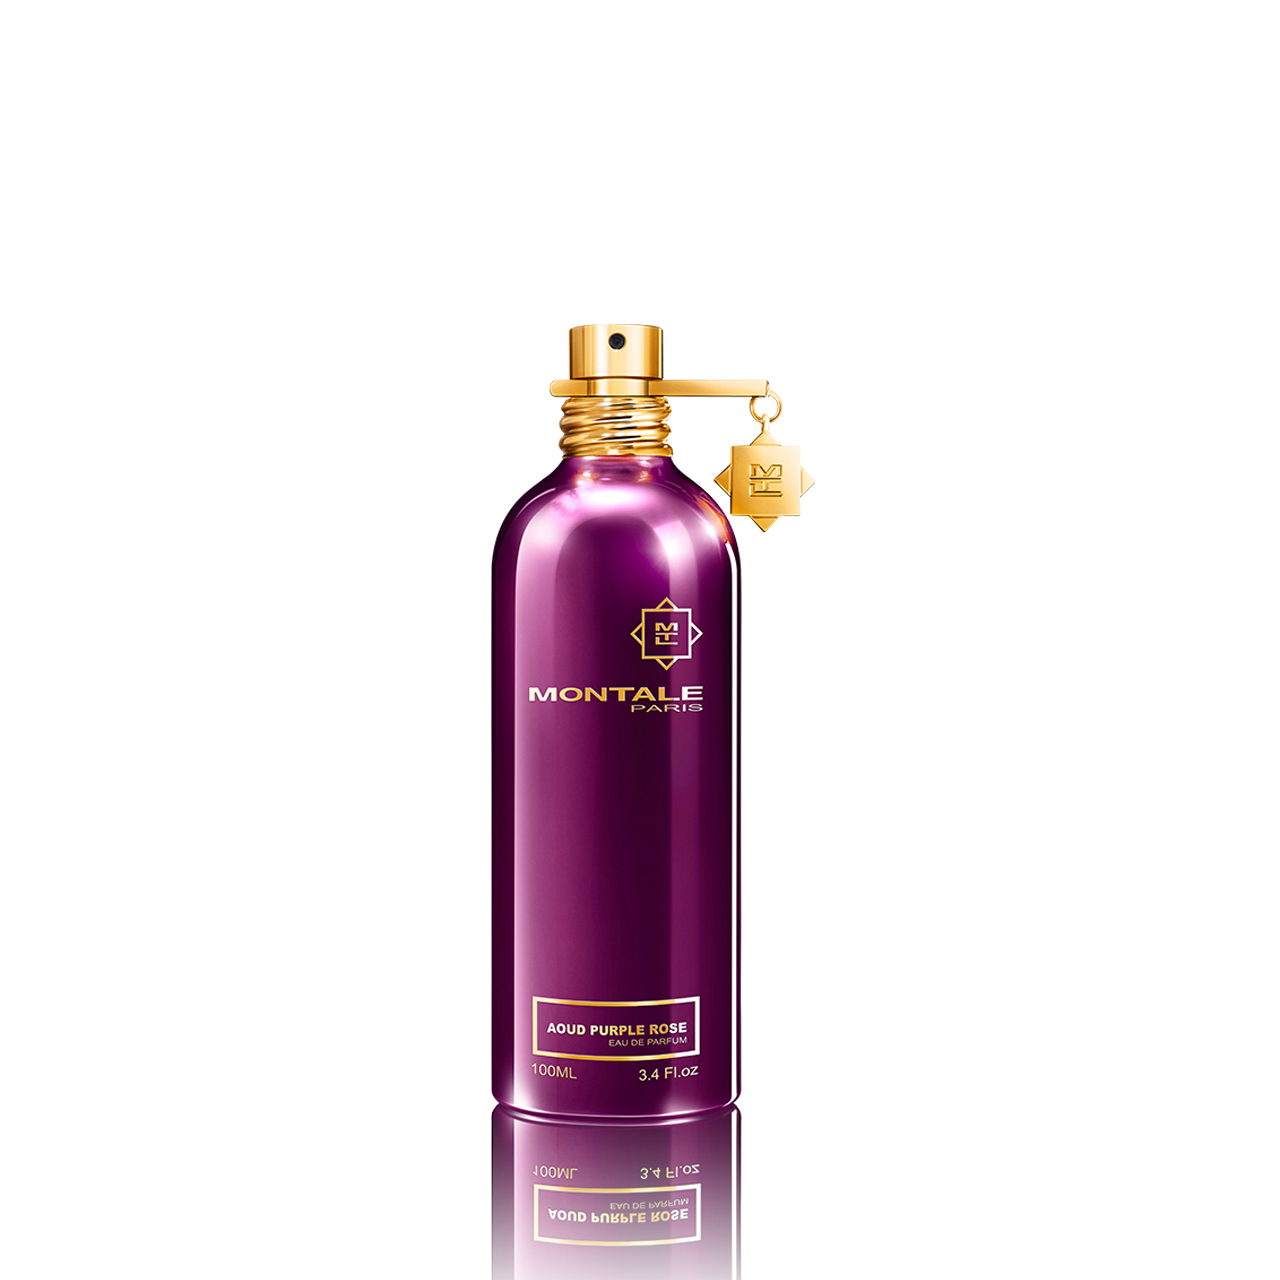 Aoud Purple Rose - Eau de Parfum